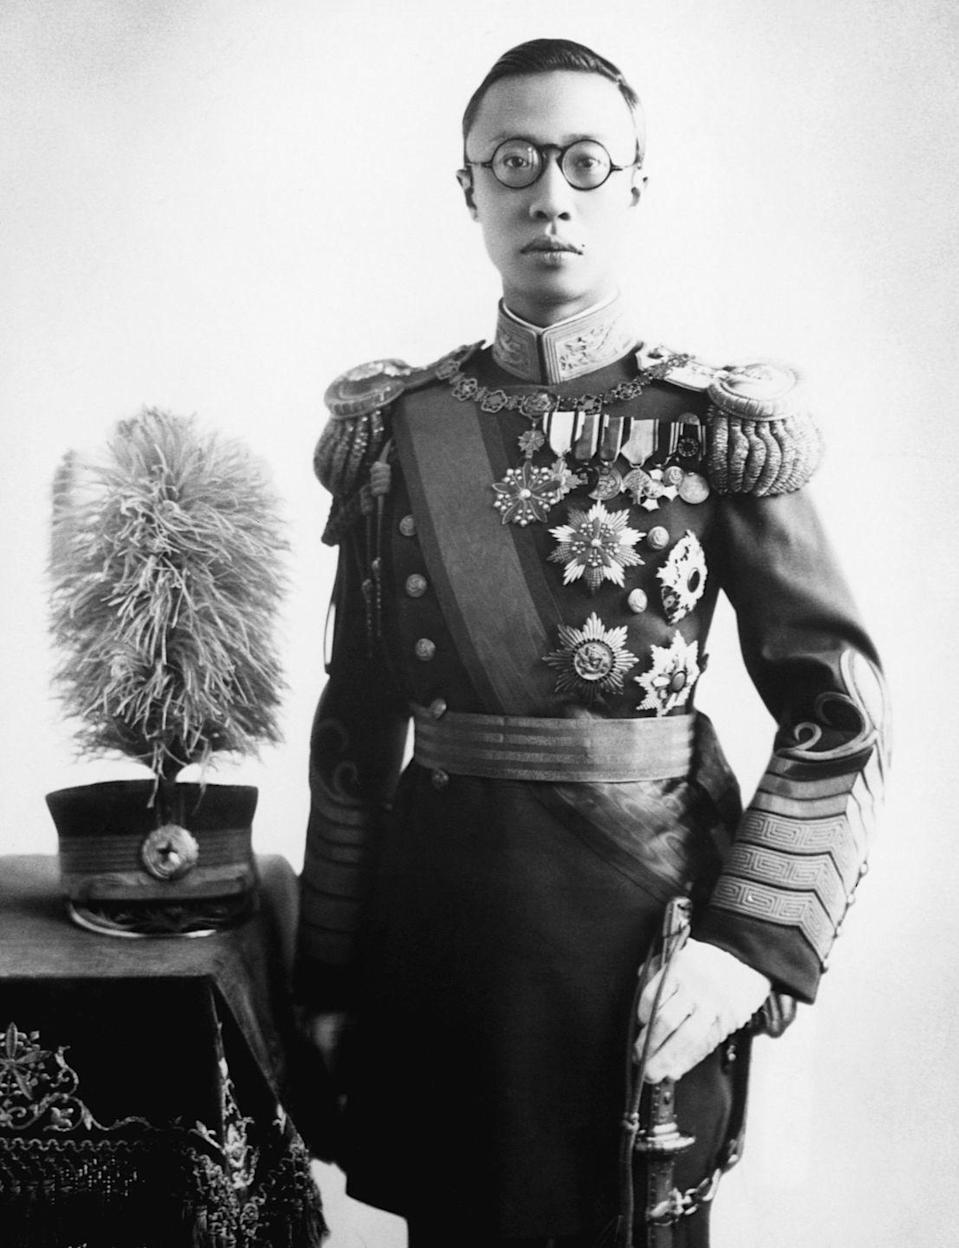 """<p>Puyi, the Last Emperor of China, married Empress Wanrong """"on December 1, 1922, the date and time having been chosen by imperial astronomers,"""" per <a href=""""https://www.history.com/news/royal-weddings-gone-bad"""" rel=""""nofollow noopener"""" target=""""_blank"""" data-ylk=""""slk:History"""" class=""""link rapid-noclick-resp""""><em>History</em></a>. The publication cited several sources suggested that Puyi, """"overwhelmed by the long night's merrymaking and distracted by the red decorations adorning the bed, panicked and fled the scene."""" Perhaps not the best indicator of marital bliss.</p>"""